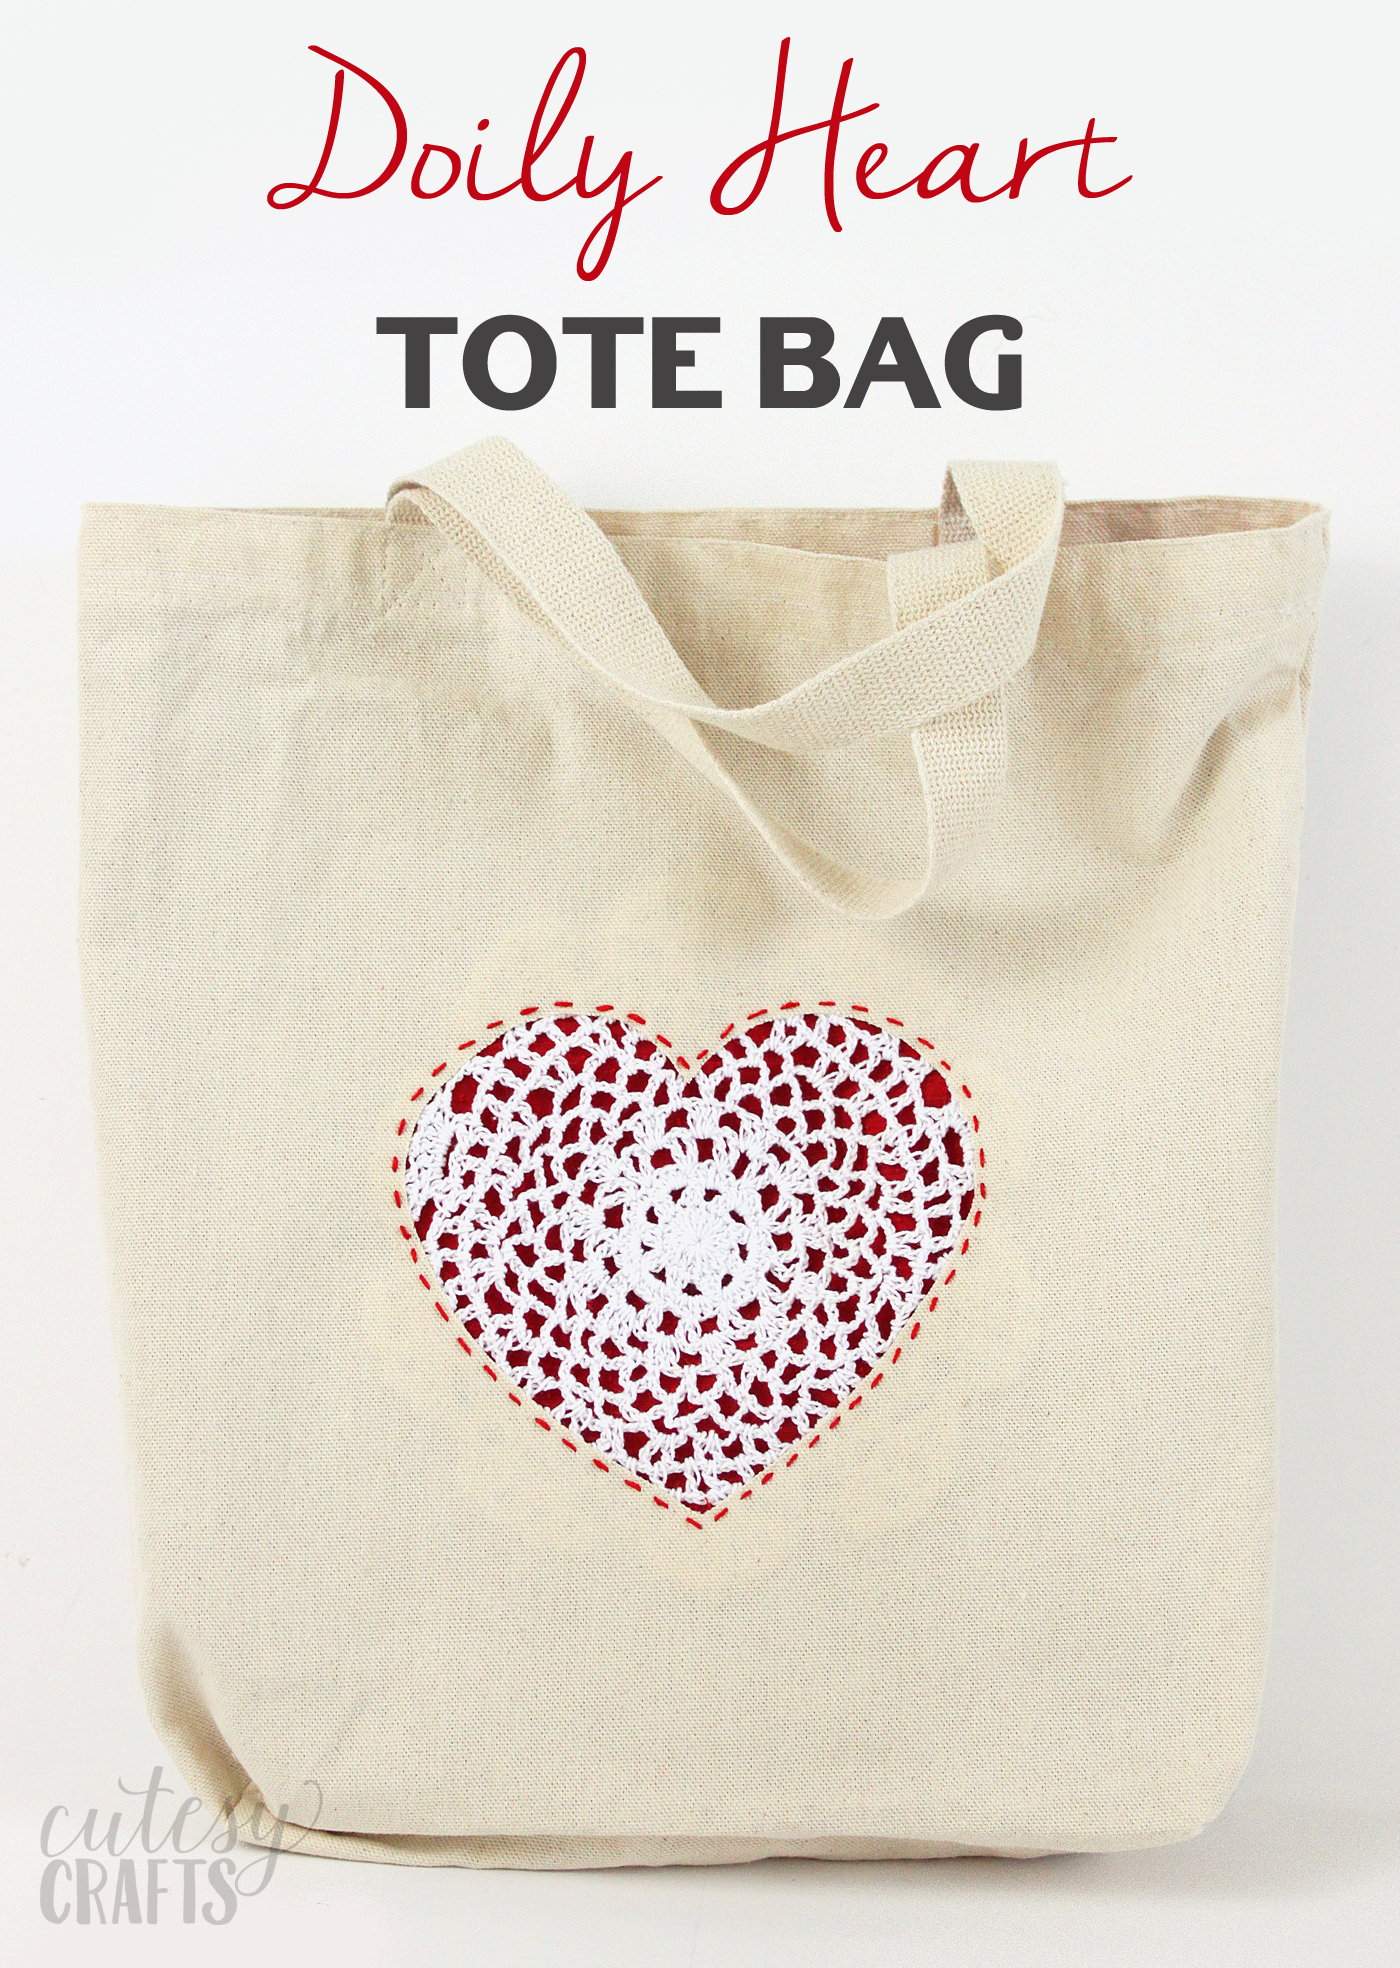 Make this DIY tote bag using scrap fabric and a reverse appliqué technique. This sweet heart is perfect for Valentine's Day or any time of year!